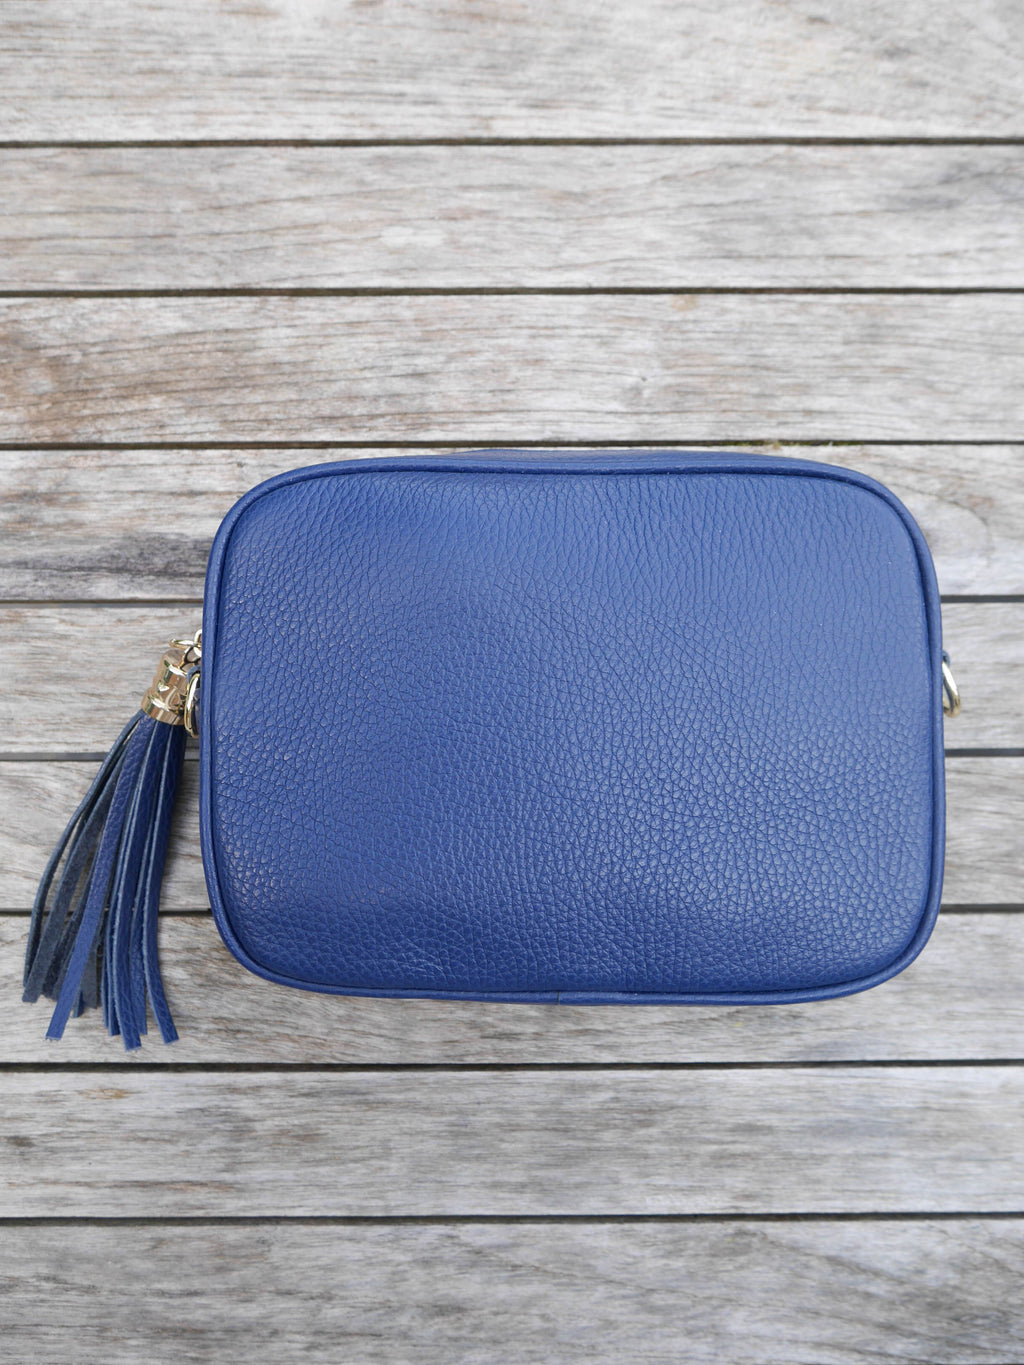 Blue Cross Body Leather Bag